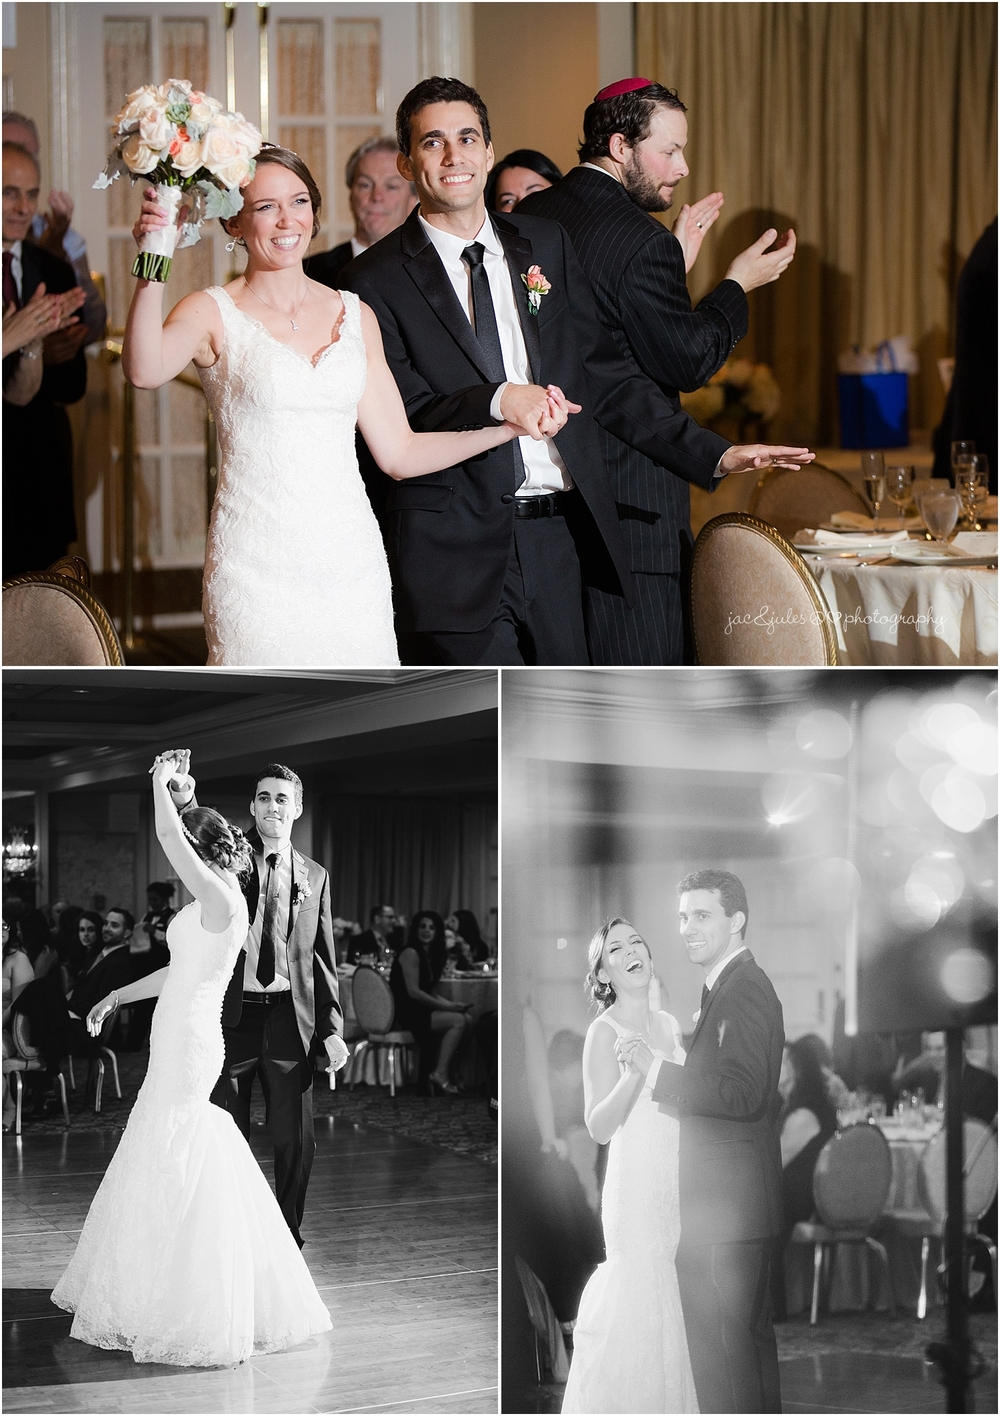 jacnjules photographs wedding reception at the olde mill inn in basking ridge nj